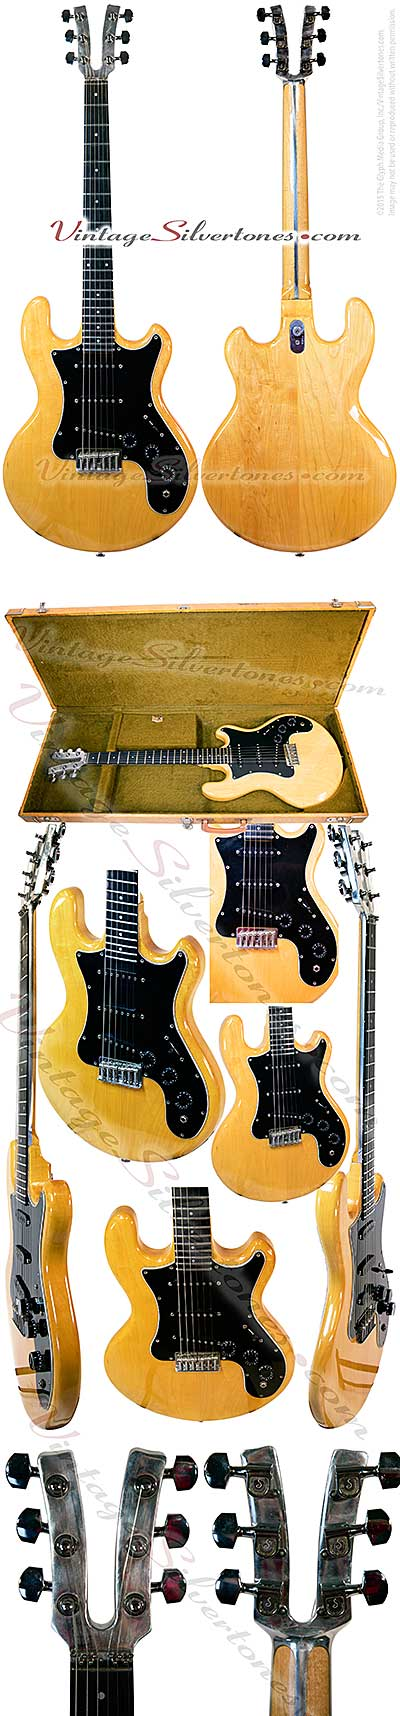 Kramer DMZ 3000-Neptune, NJ 3 pickup, electric guitar, 1979, natural blonde finish, black pickguard, double cutaway